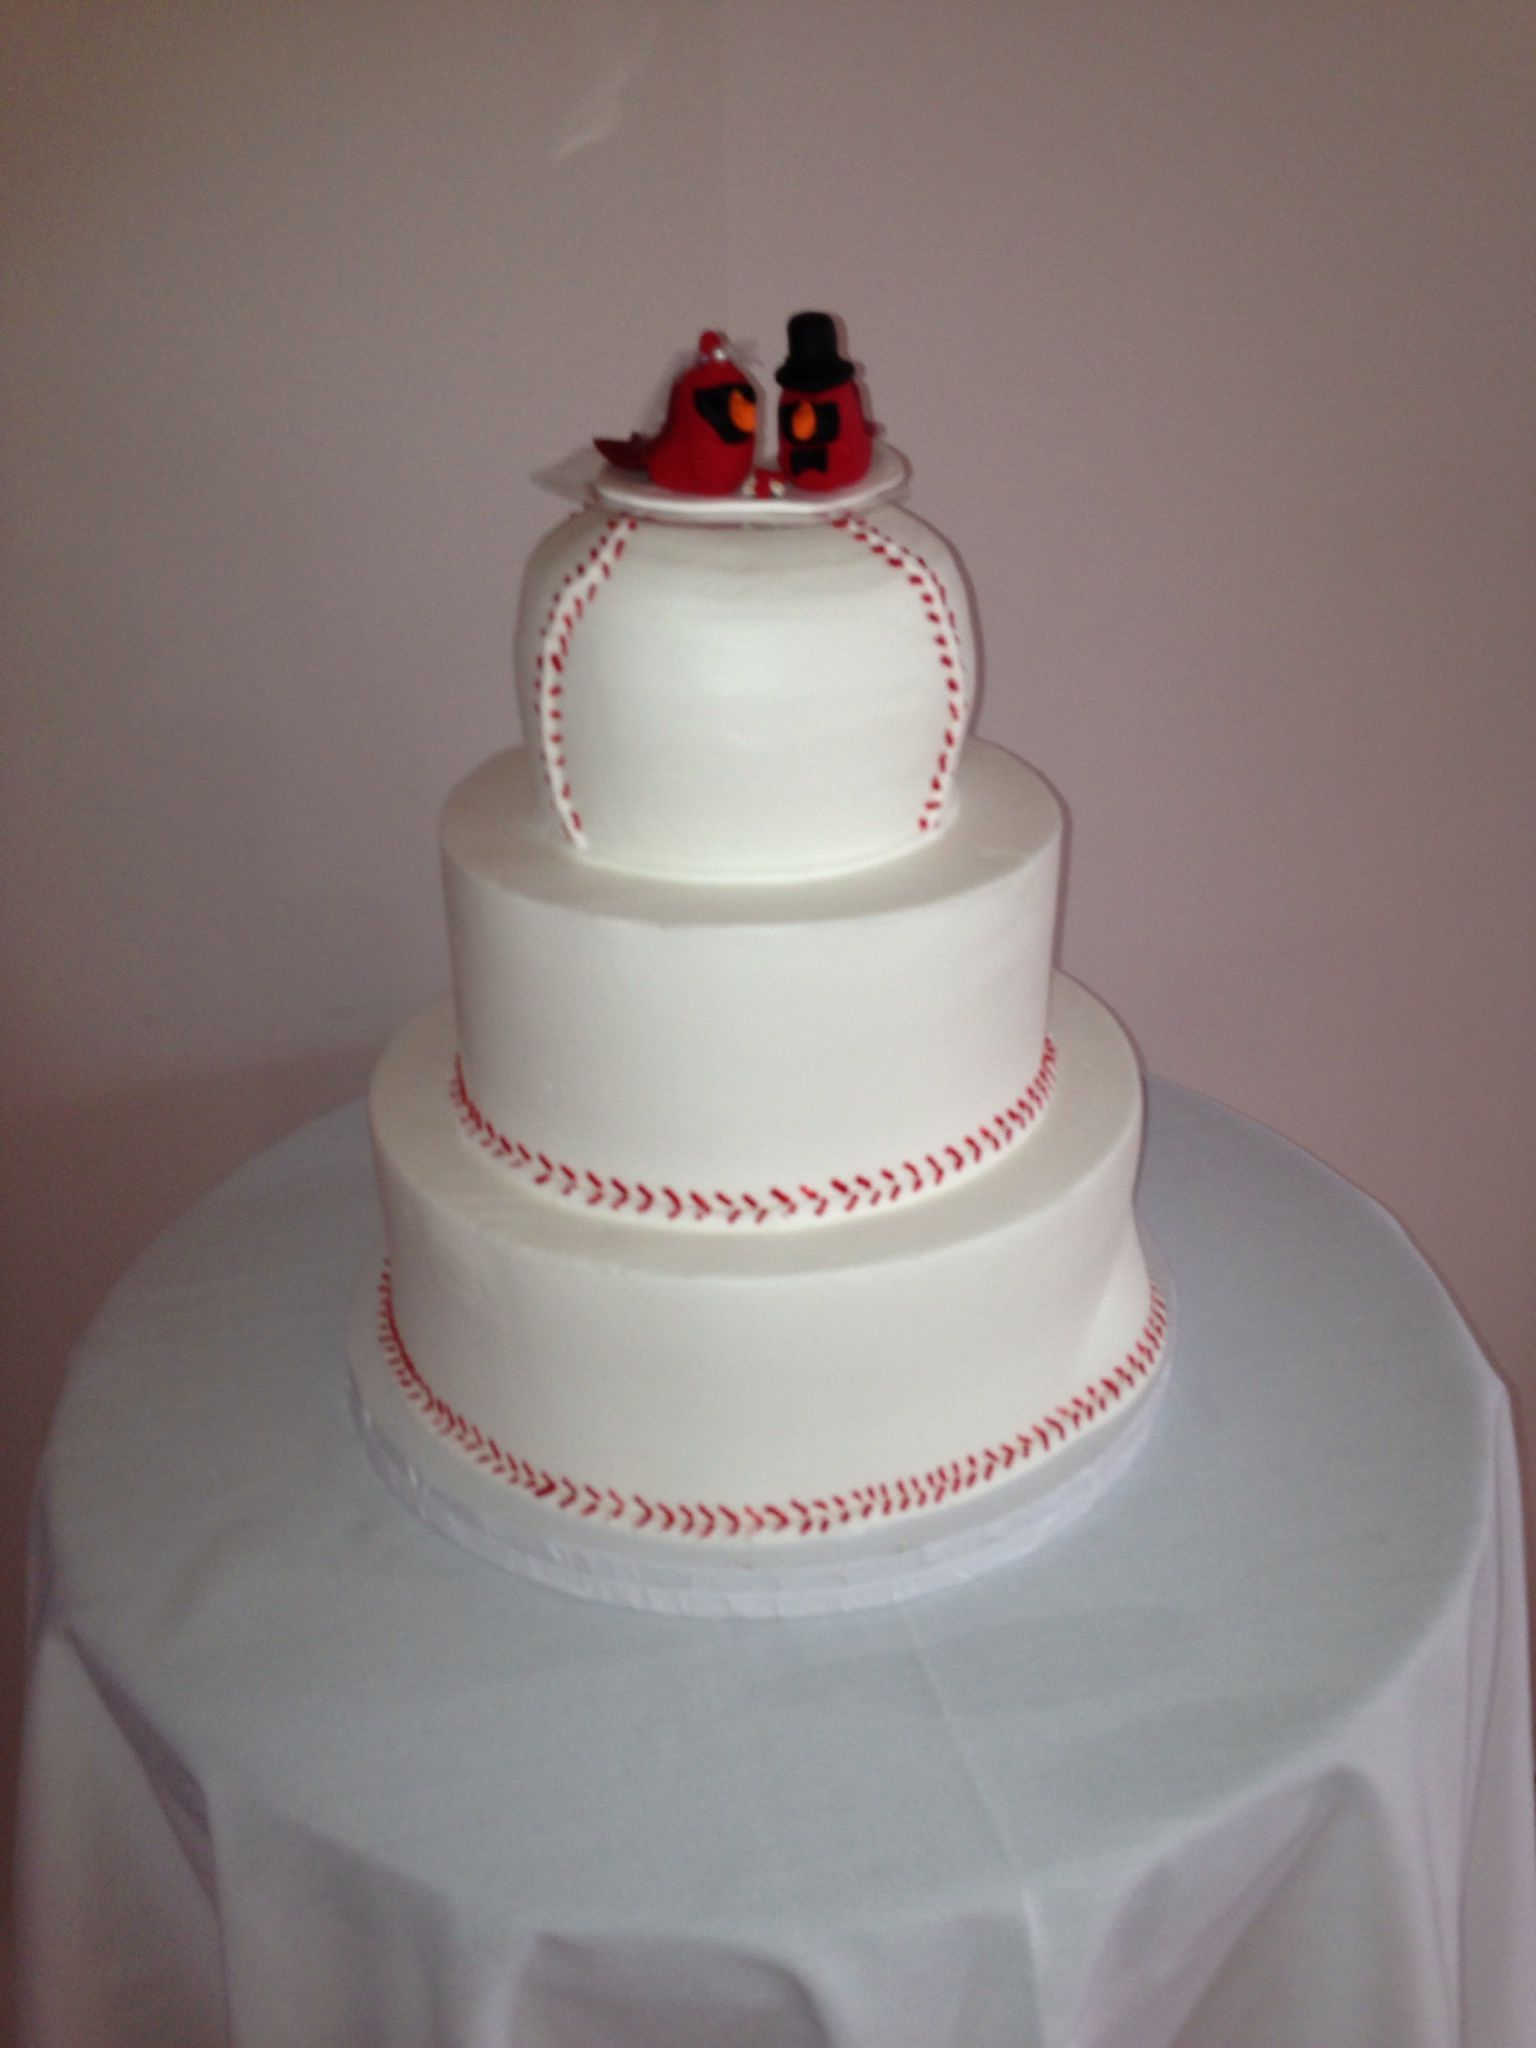 st louis cardinals wedding cake dream wedding pinterest